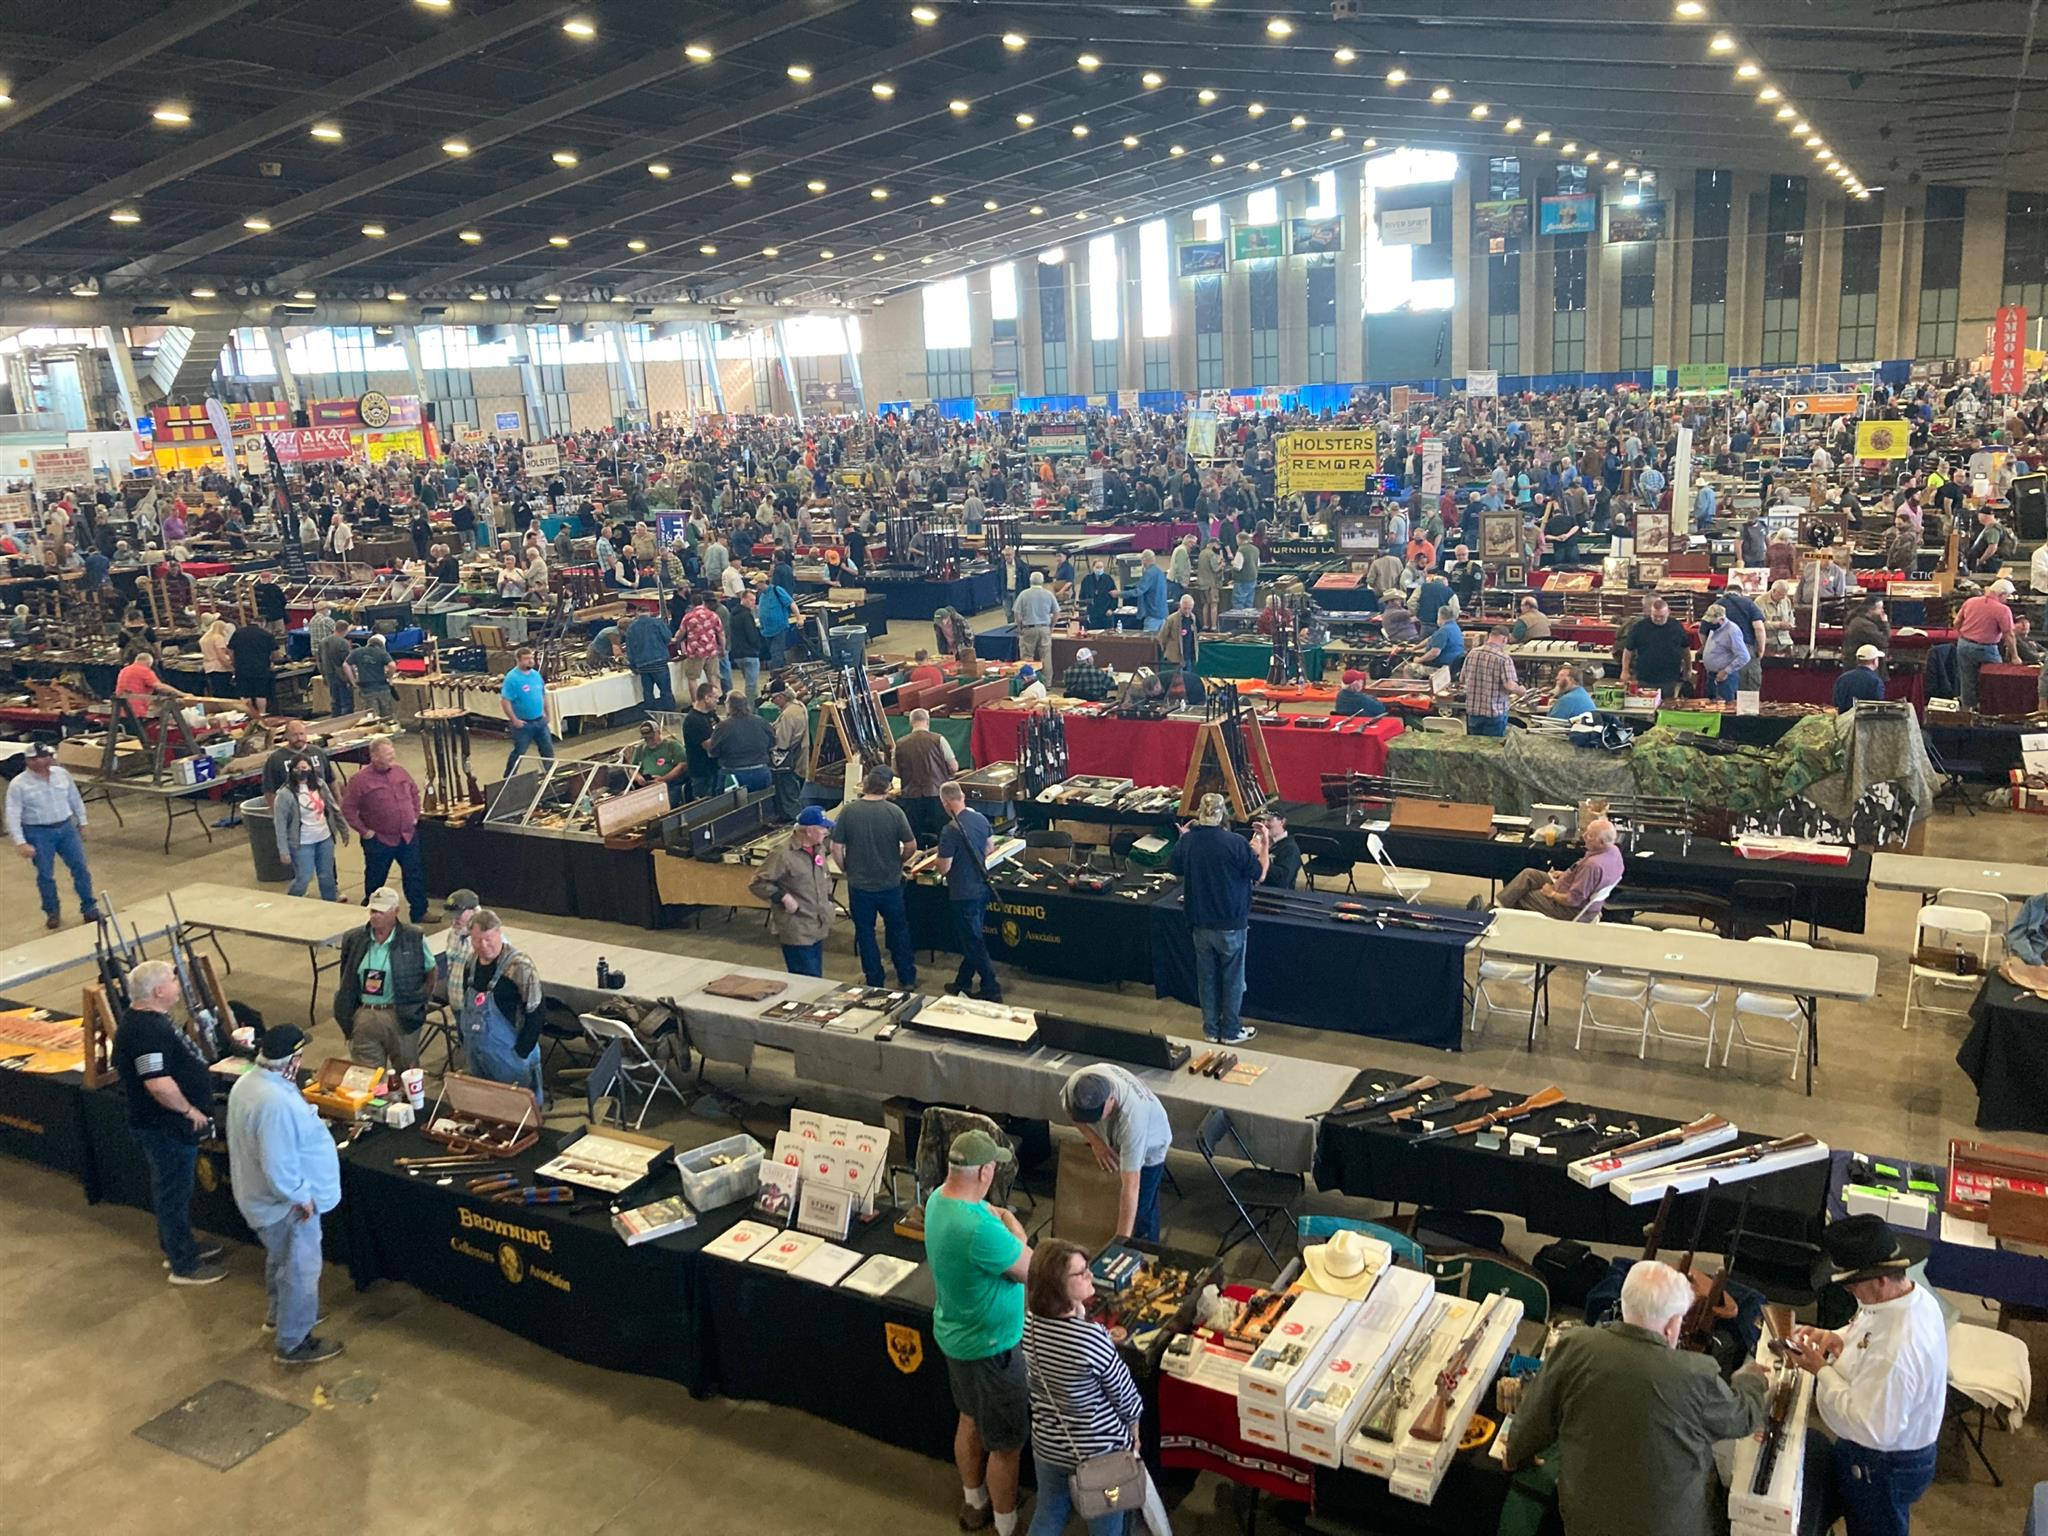 Large crowds pack Tulsa fairgrounds for arms show